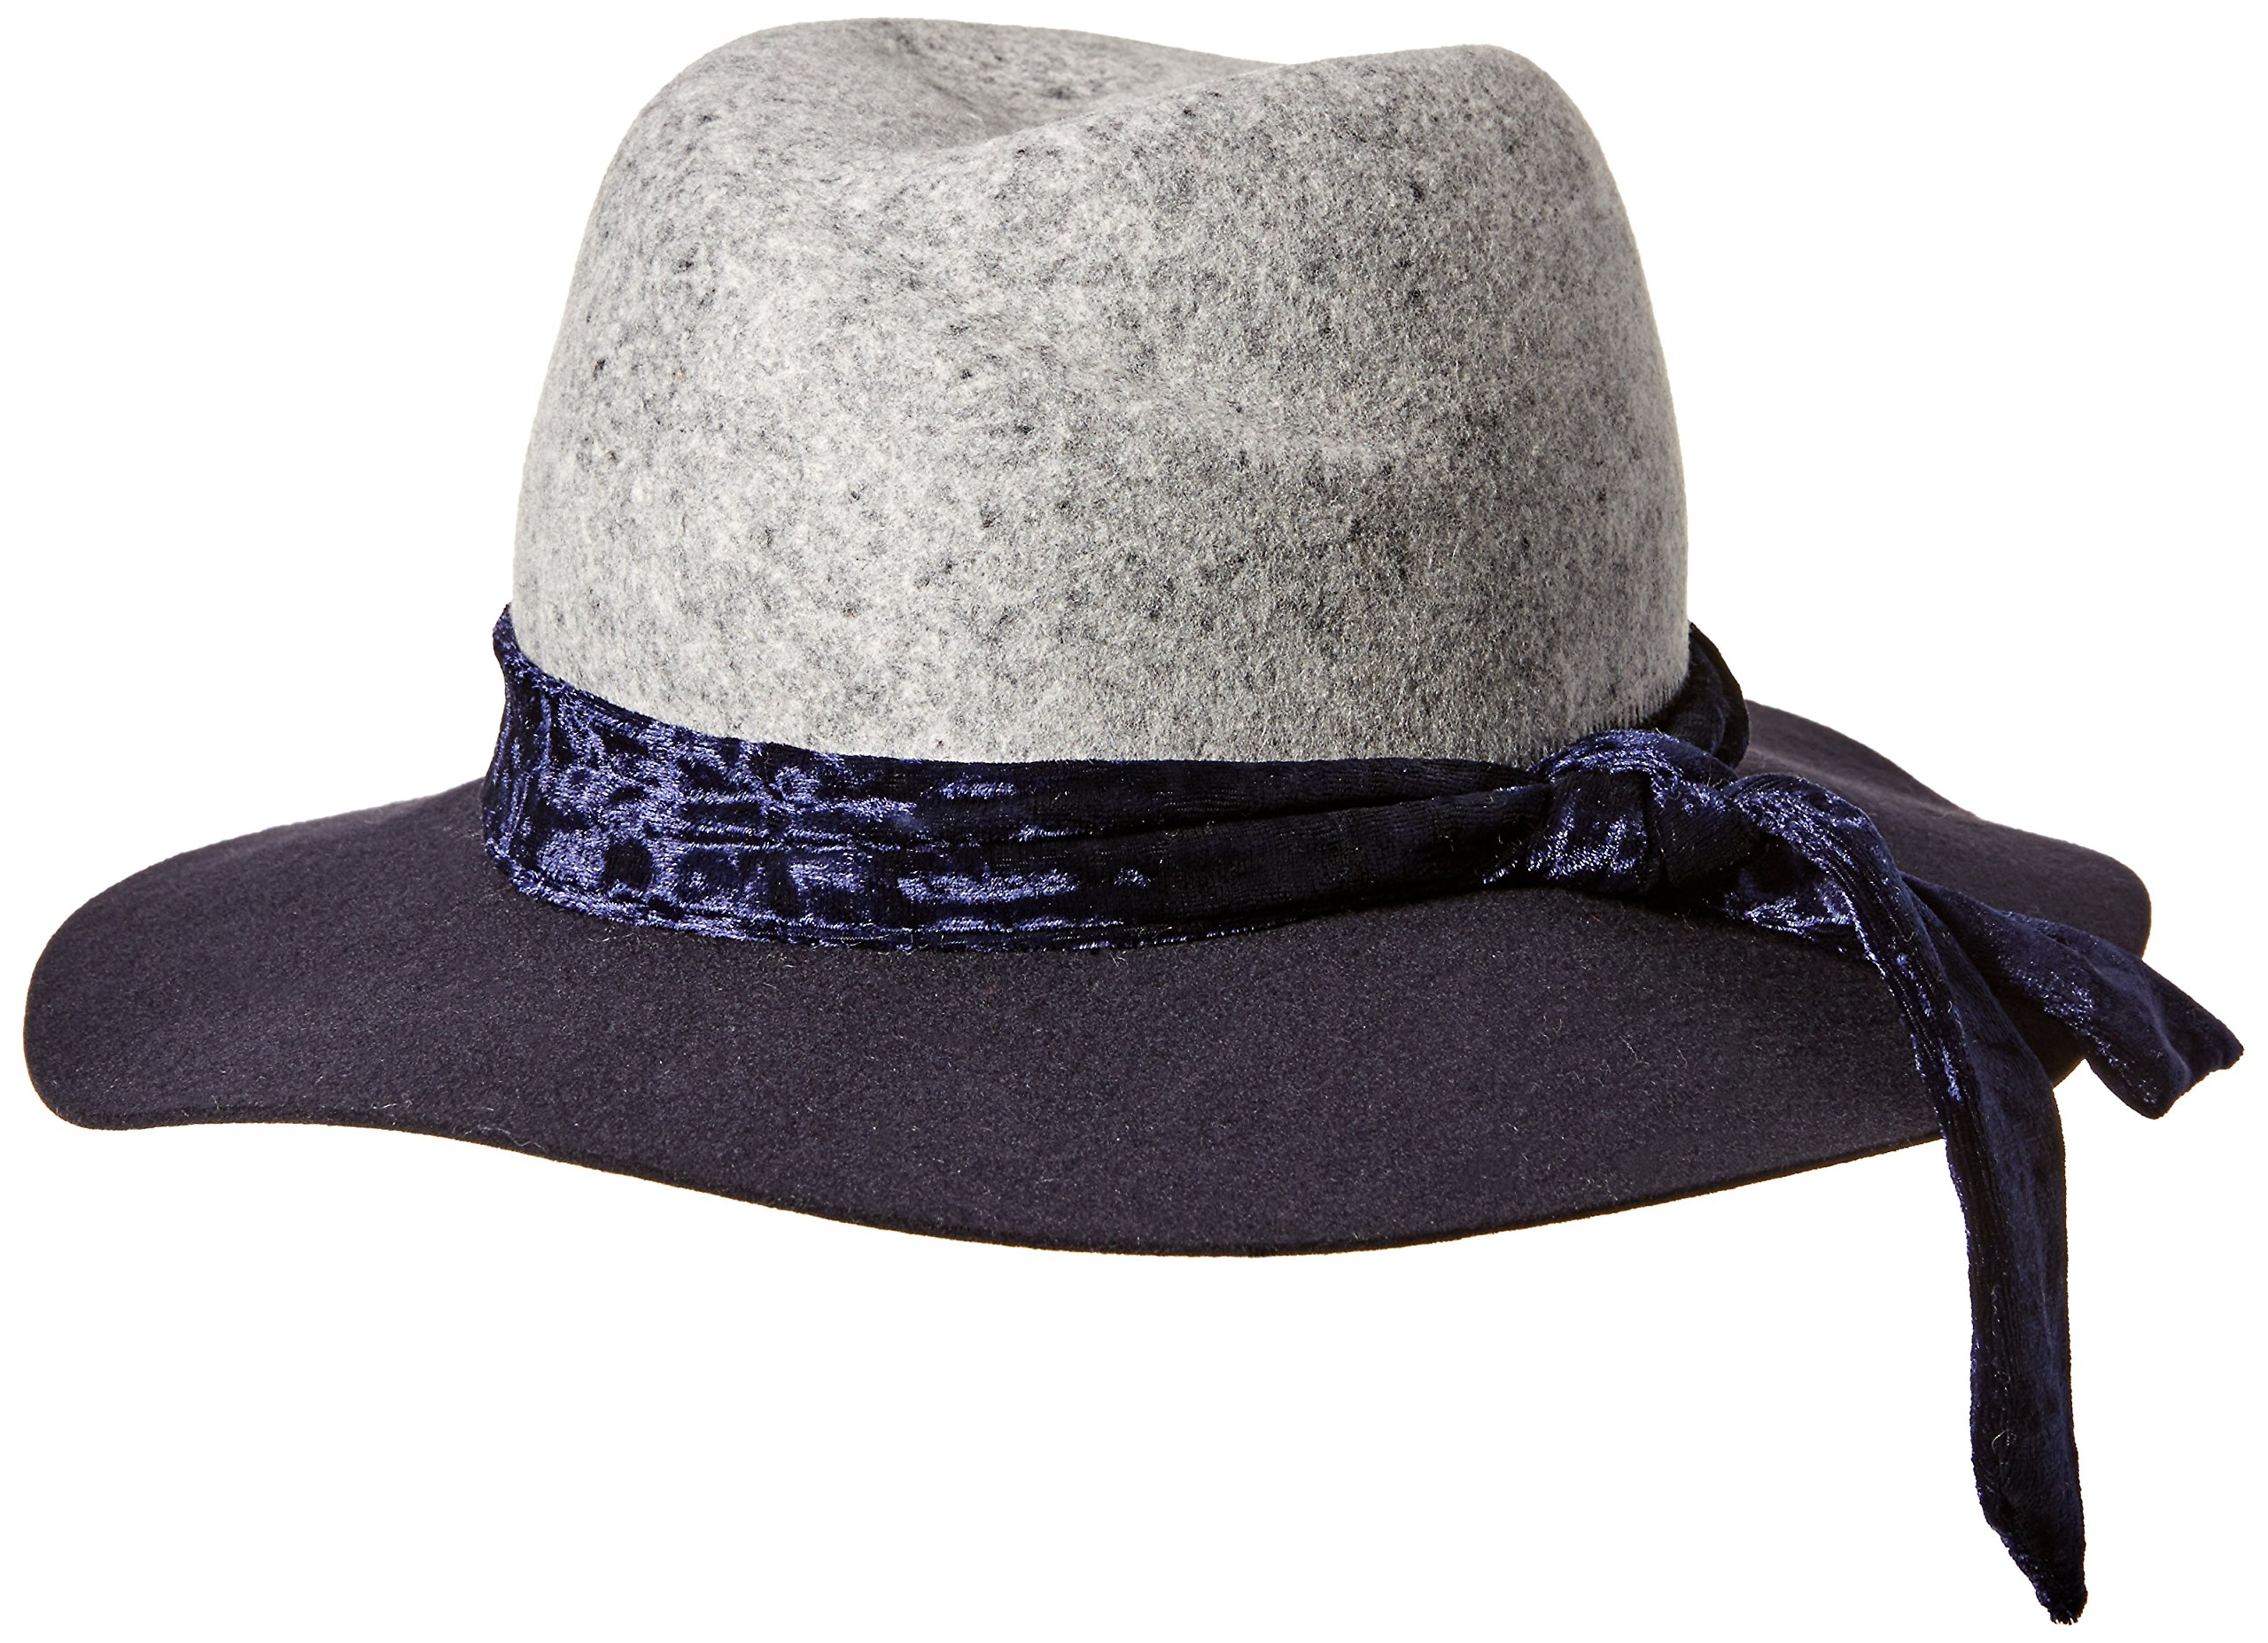 Orchid Row Women's Fashion Ranger Hat with Velvet Band Navy/Heather O/S